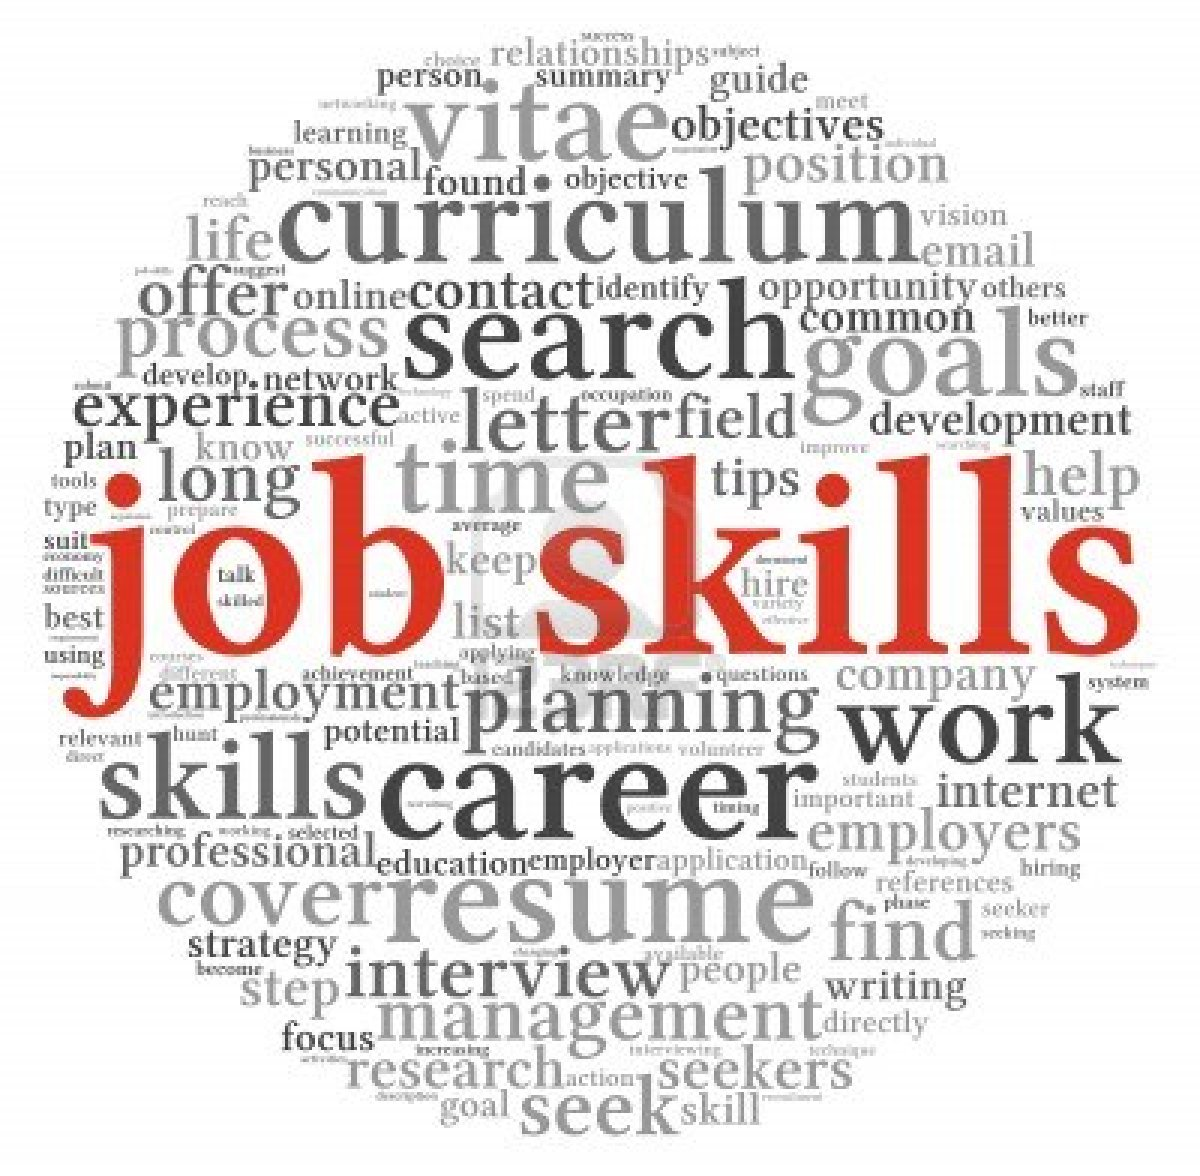 important skills qualities that employees look for in employment